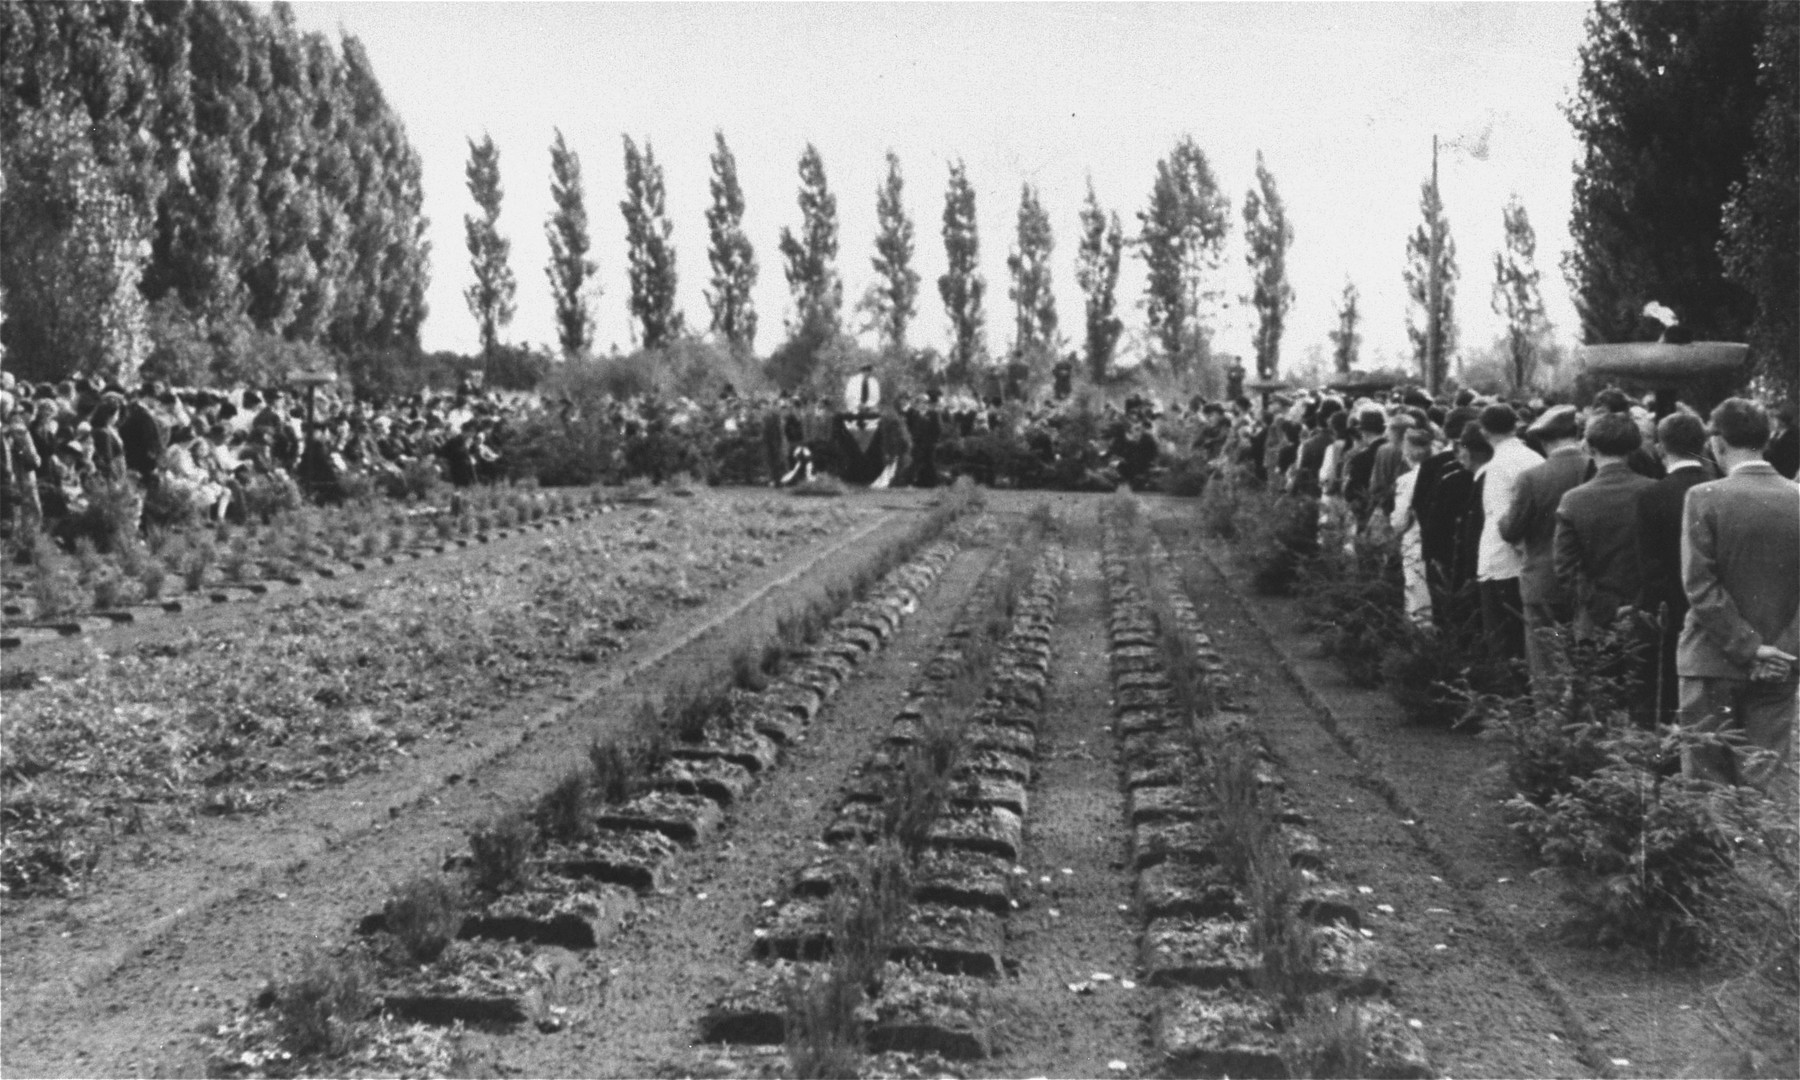 Funeral in Munich for prisoners who died on the death marches of 1944-45.